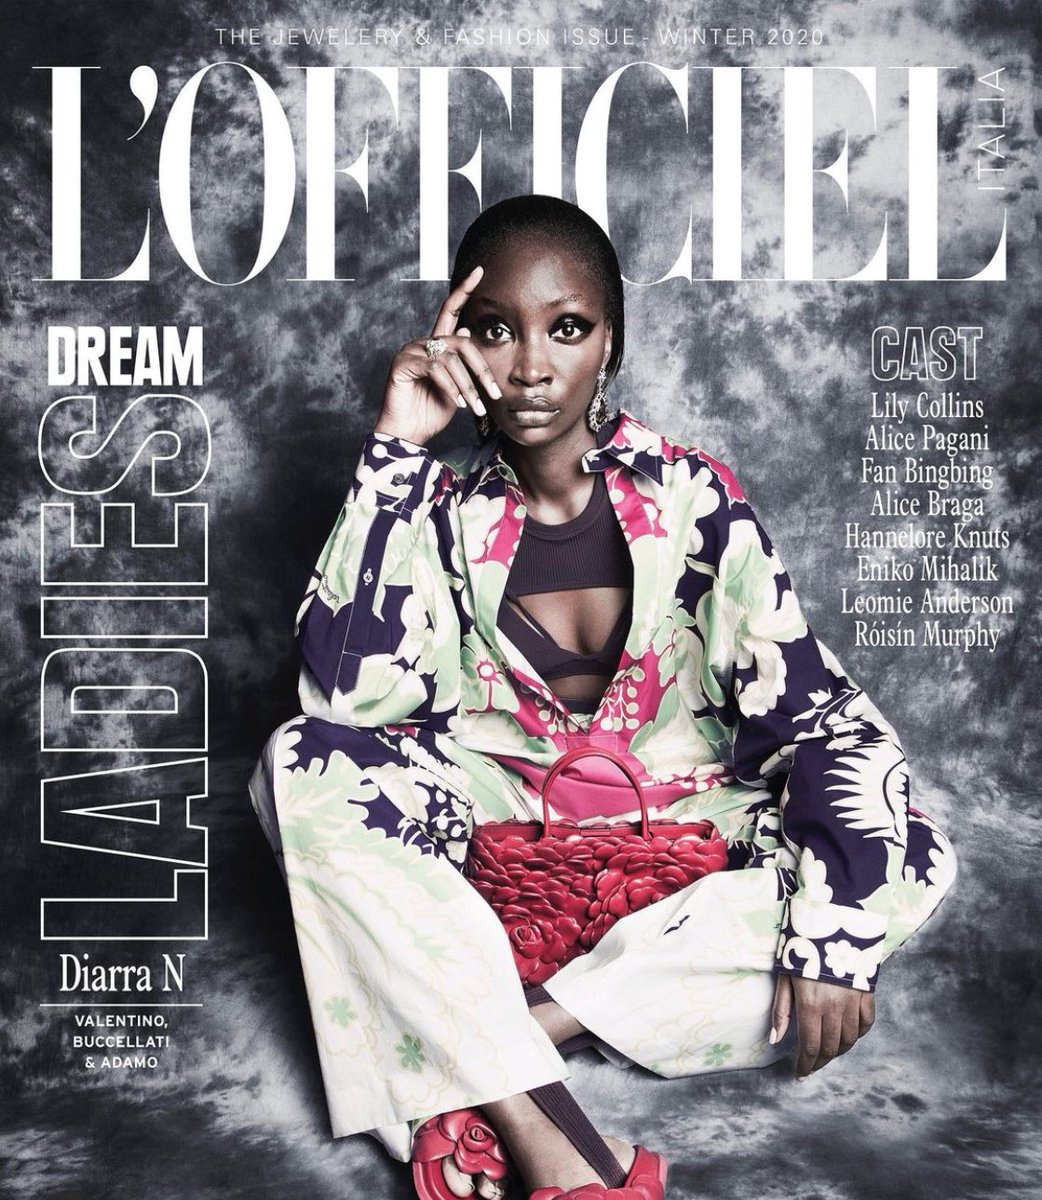 For the Jewelry and Fashion Issue of @LOfficielItalia, #Diarrandiaye was photographed by #AlbertoTandoi in a floral printed look from #ValentinoDiary, along with an #AtelierBag Valentino Garavani 03 Rose Edition and Valentino Garavani Atelier Shoes.  #ValentinoNewsstand